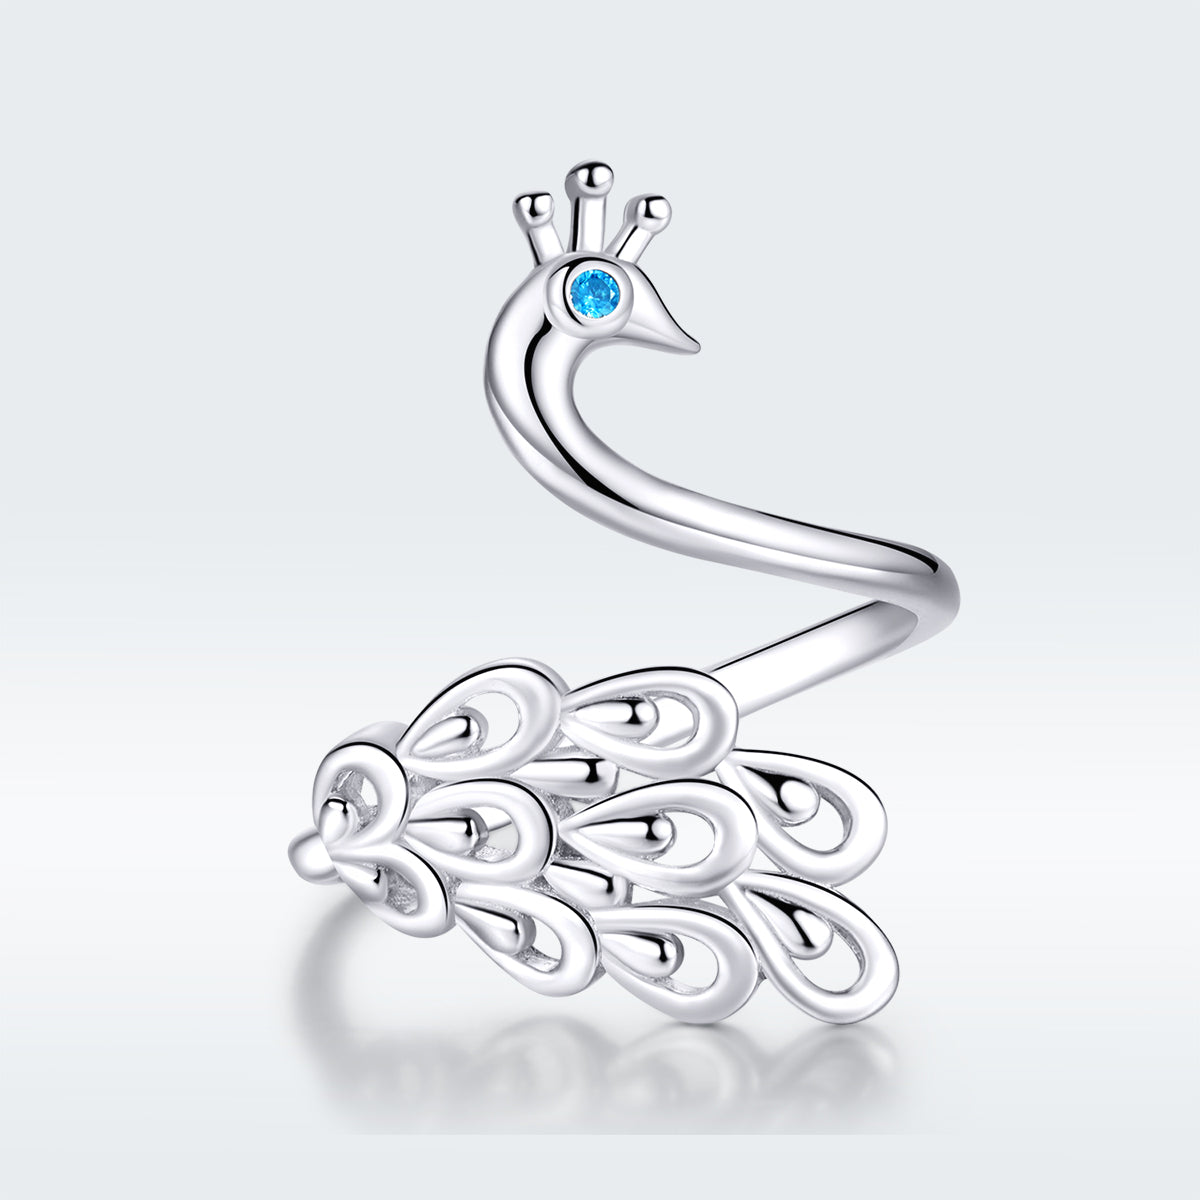 S925 sterling silver peacock ring white gold plated cubic zirconia ring